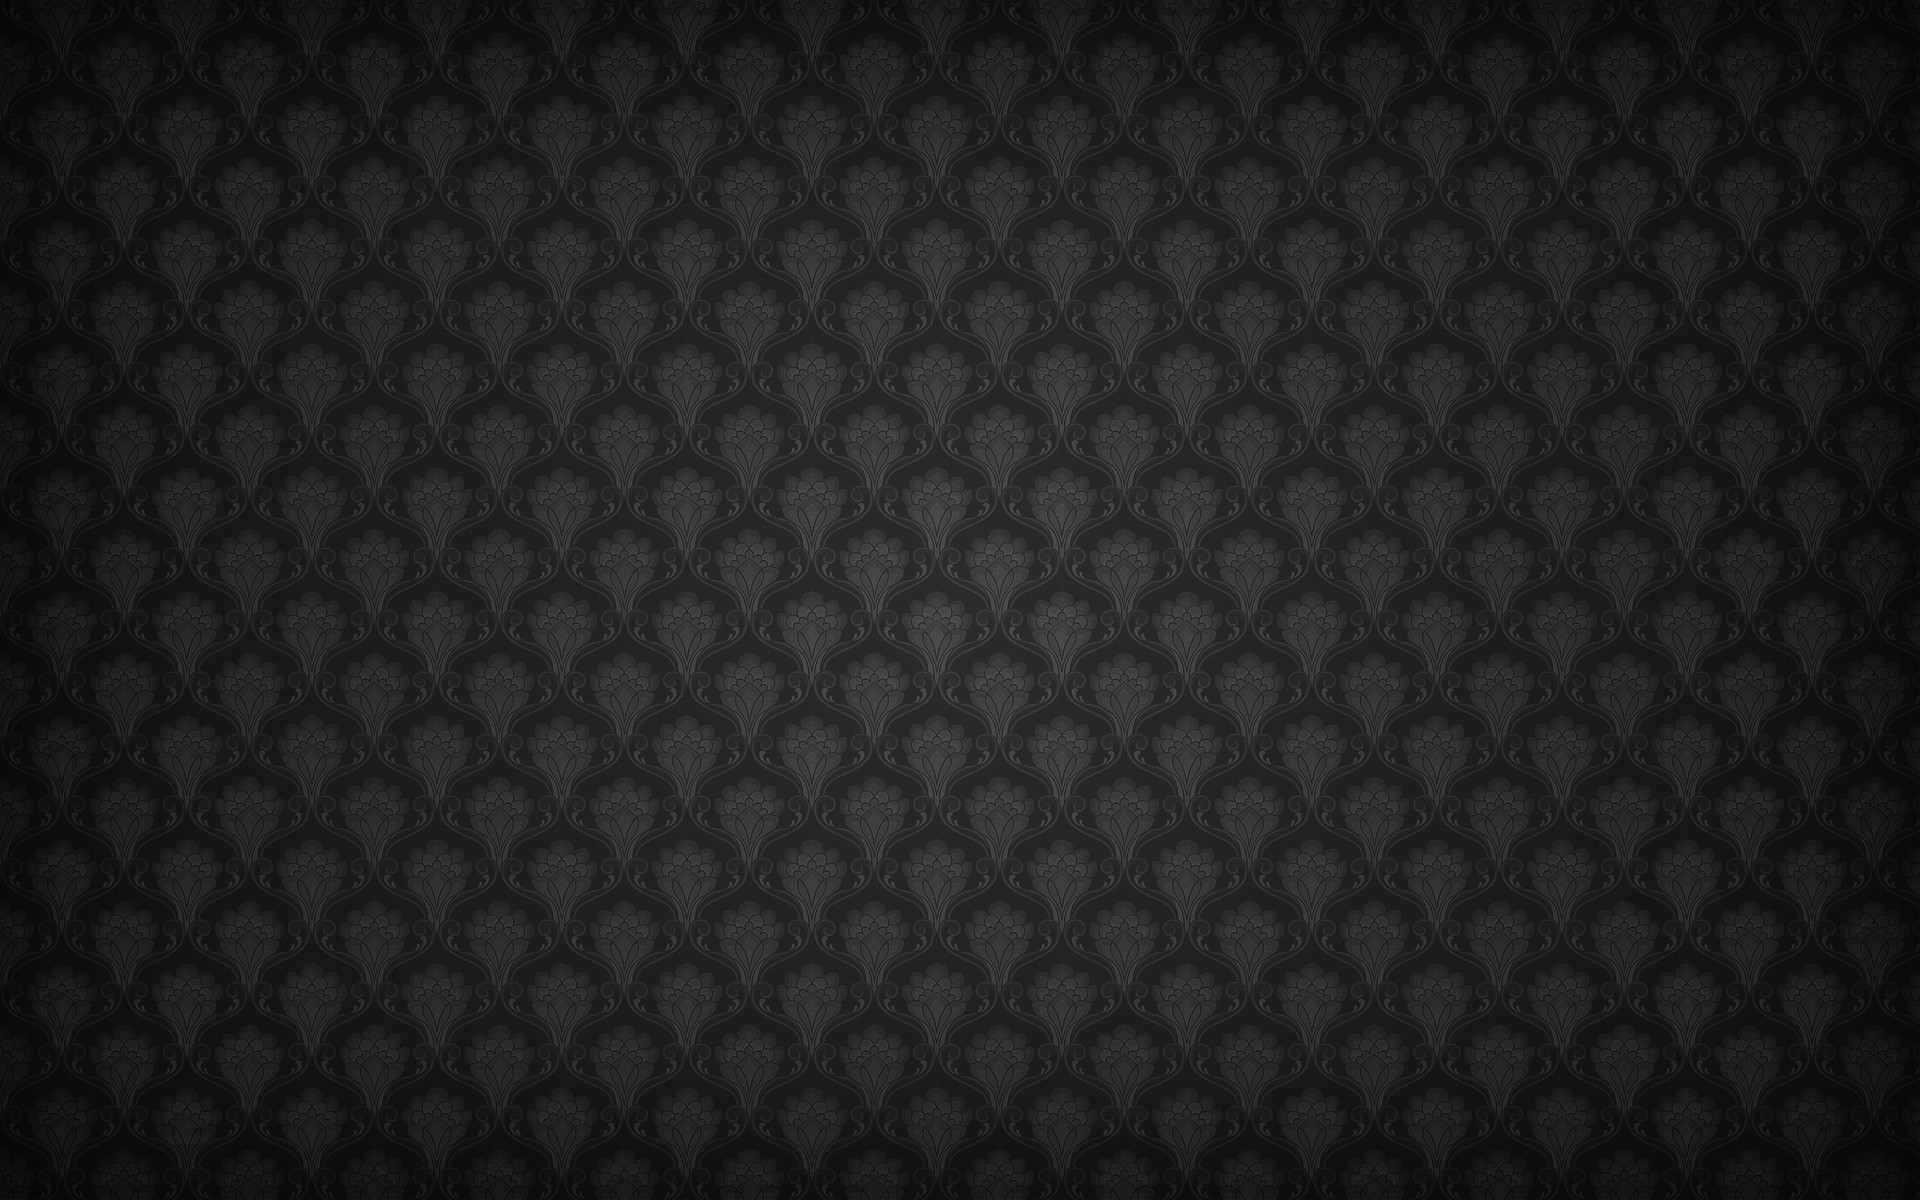 Wallpapers Patterns 66 Background Pictures Pin Color Dots Desktop Wallpaper On Pinterest 1080x1920 Iphone 5 Pattern By Hadi Demir Samsung S8 Of